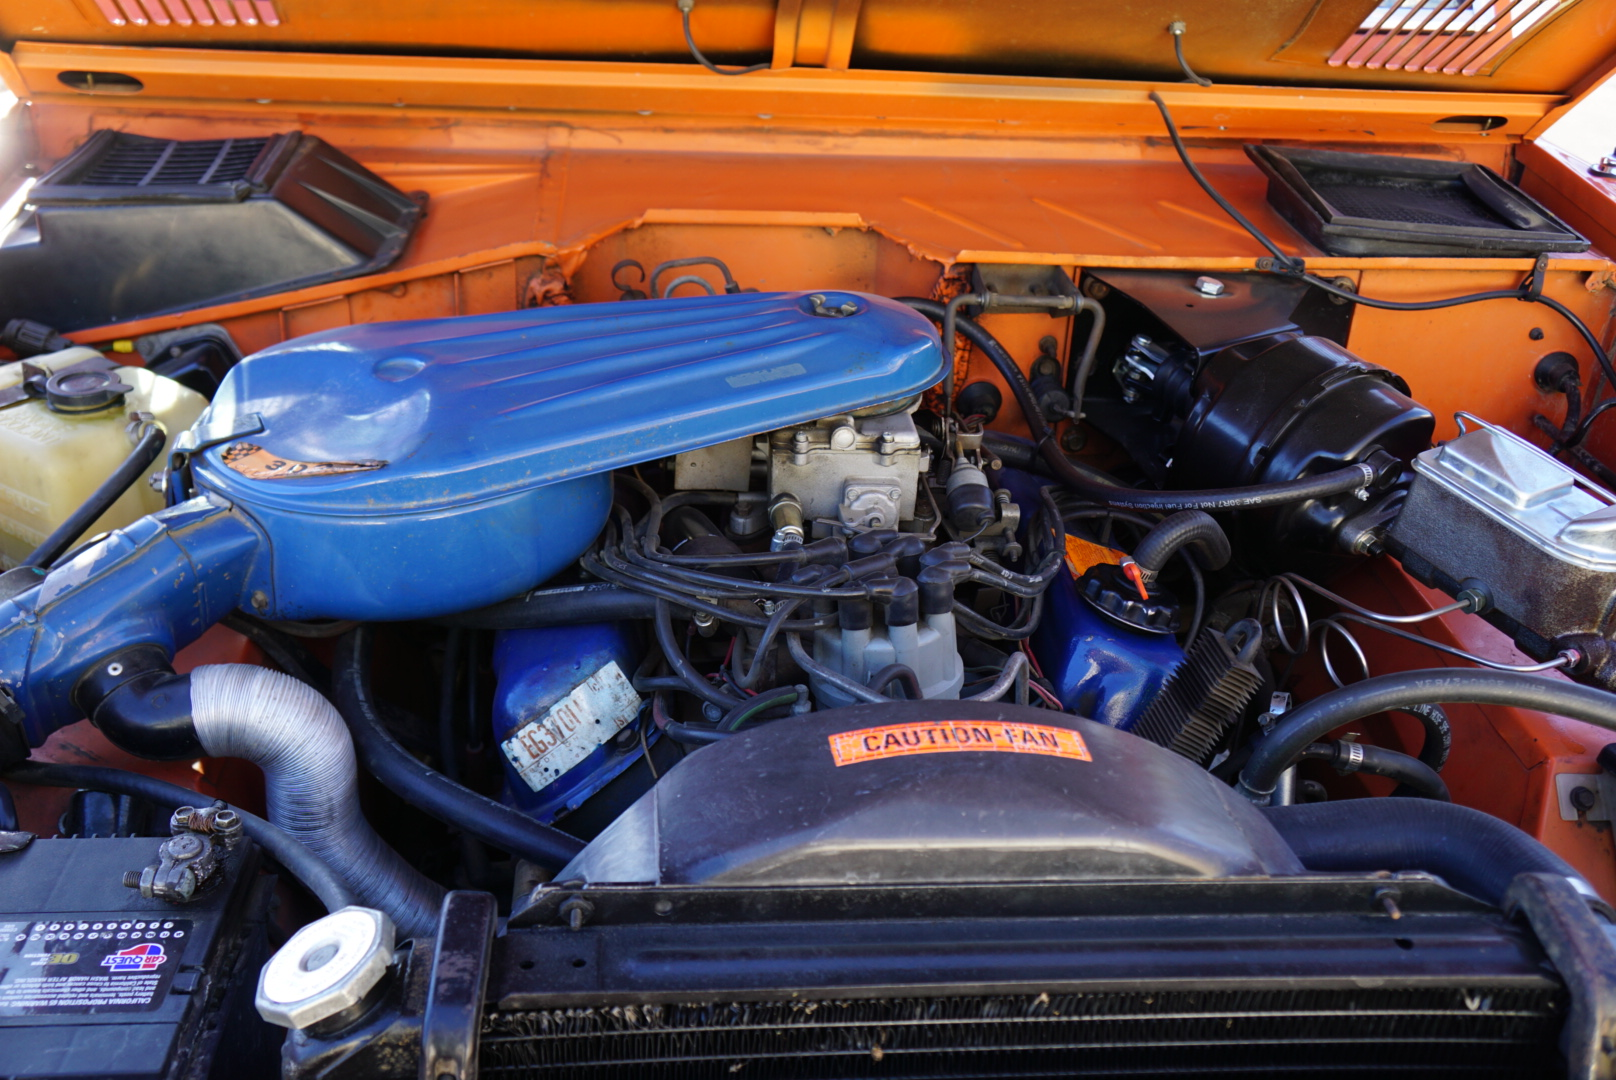 1974 Ford Bronco engine